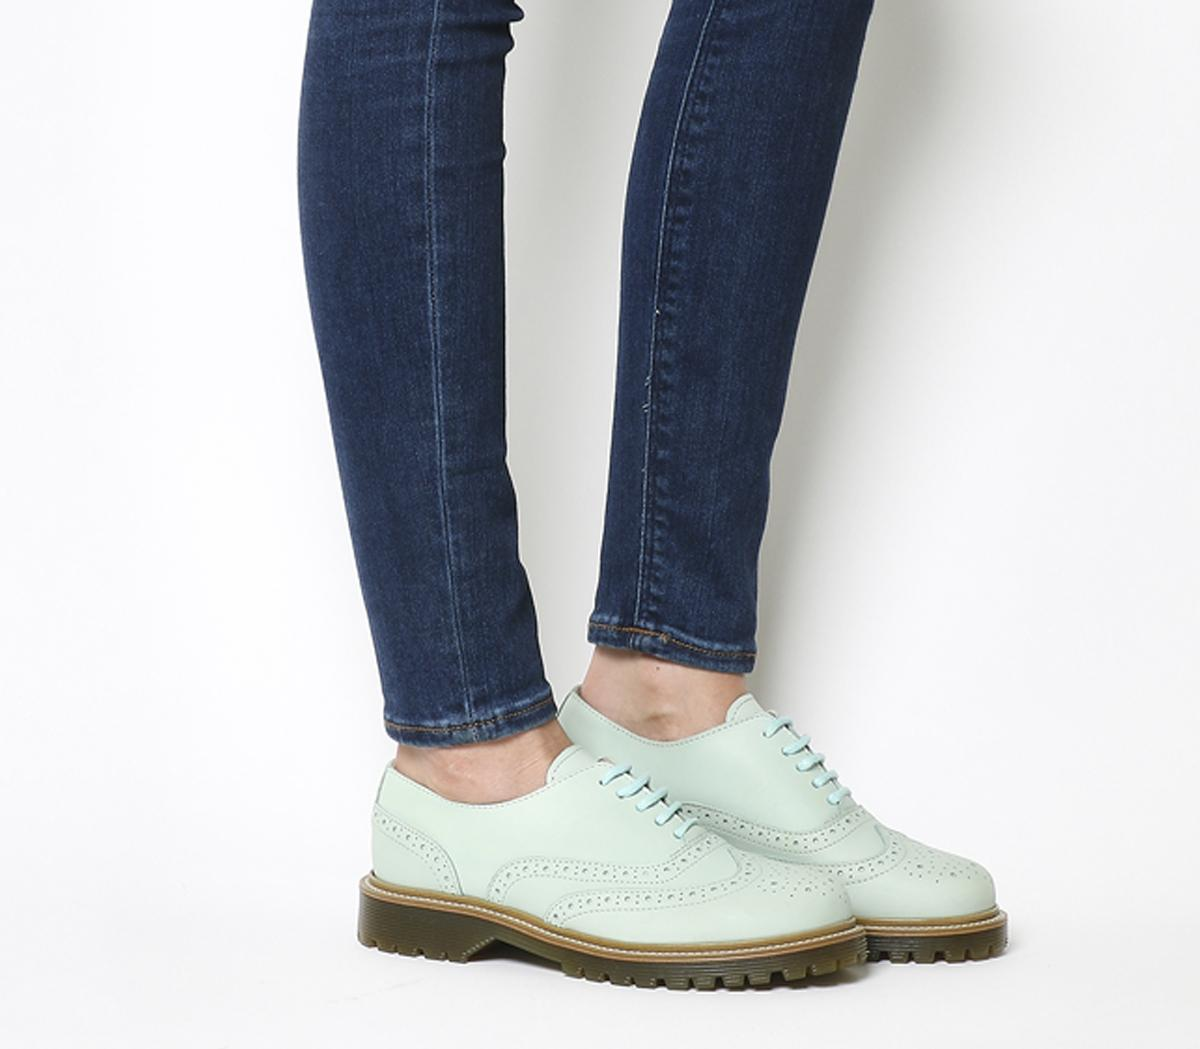 Vendetta Cleated Sole Brogues